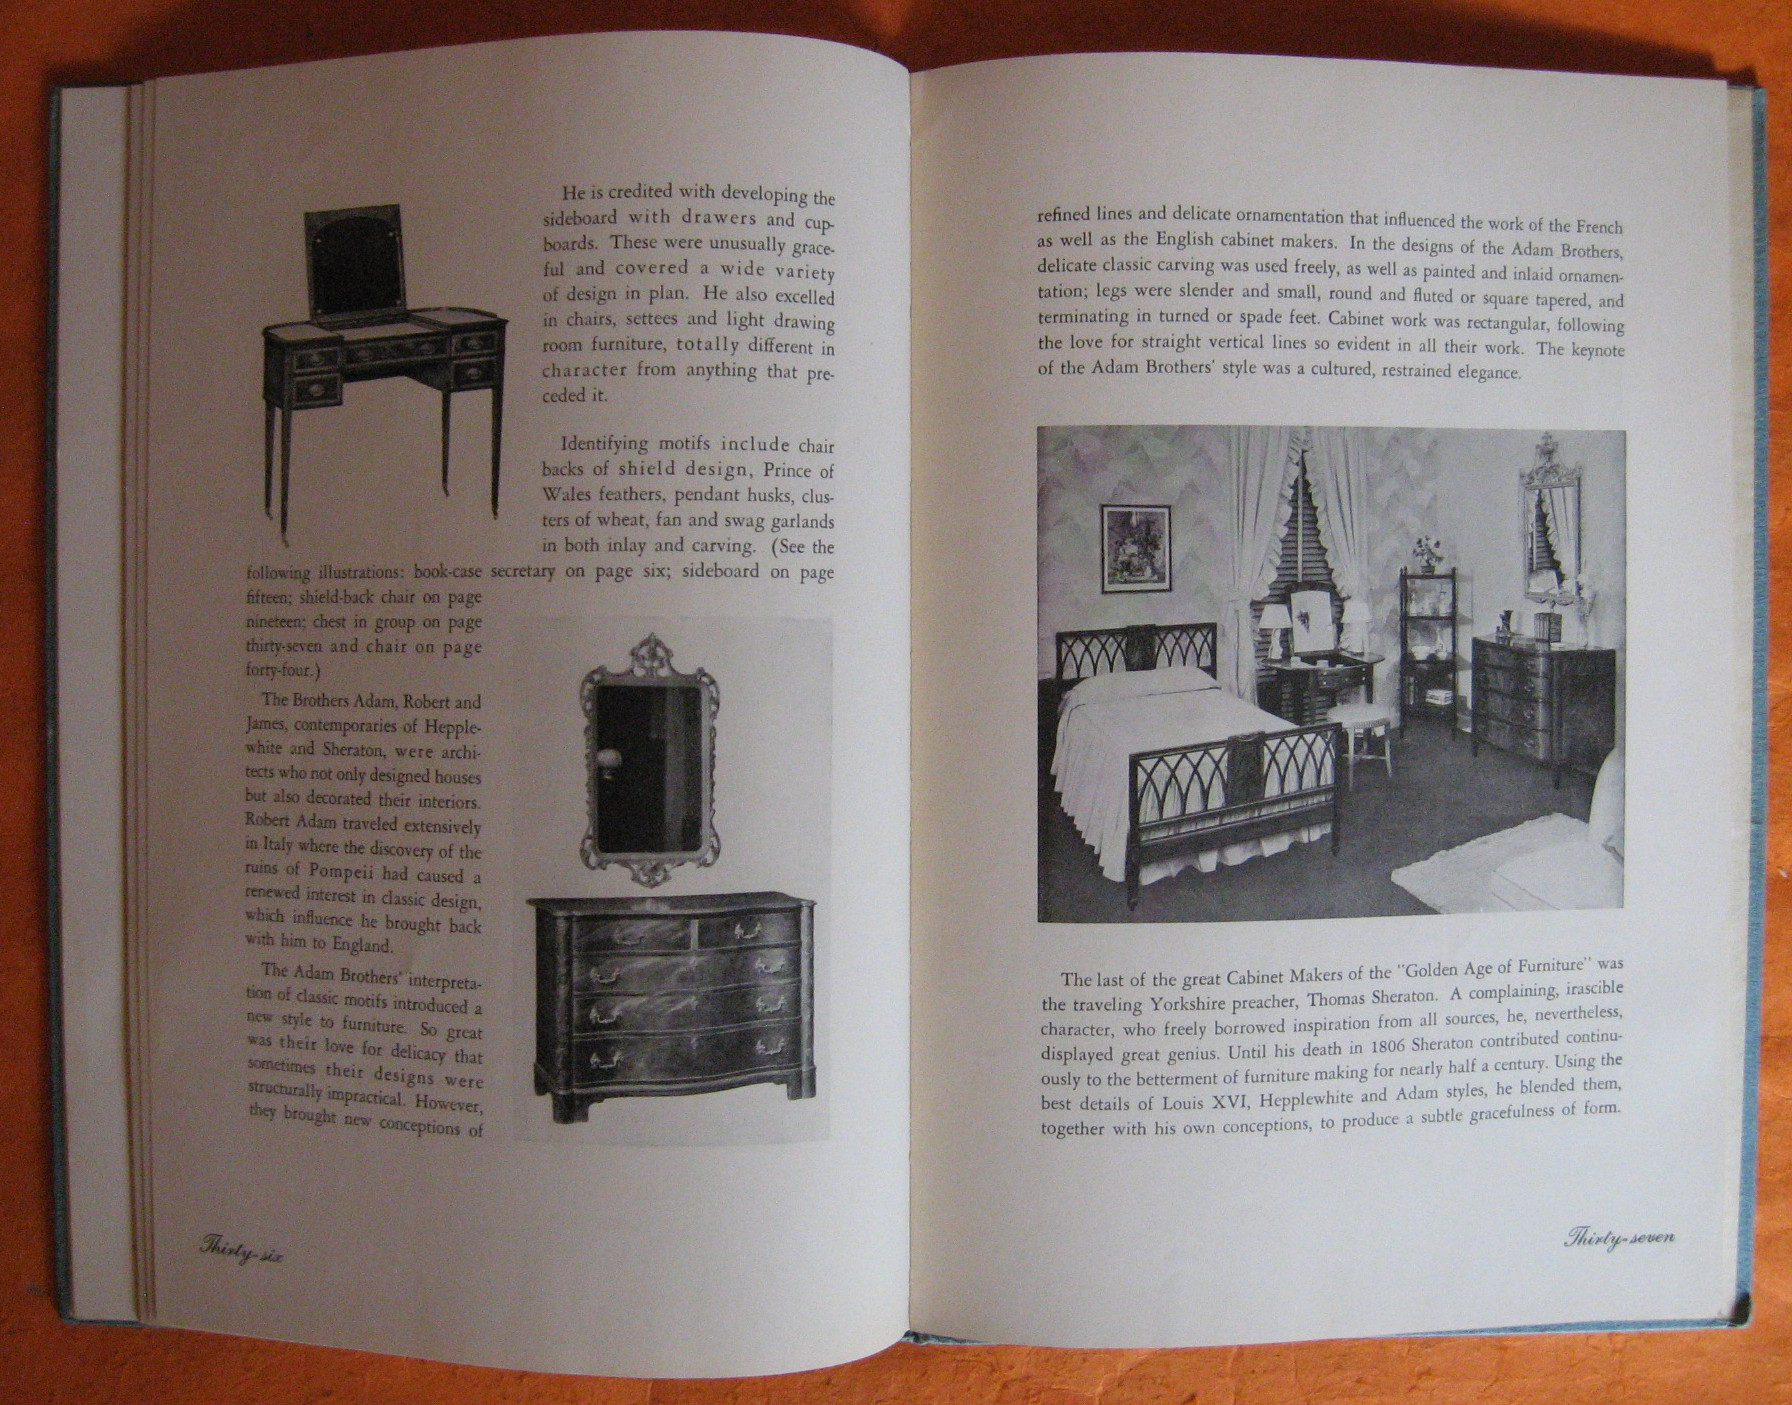 Fast Deliver Rare 1940 Guide To English French Furniture Of The 18th Century Baker Furniture Price Guides & Publications Furniture